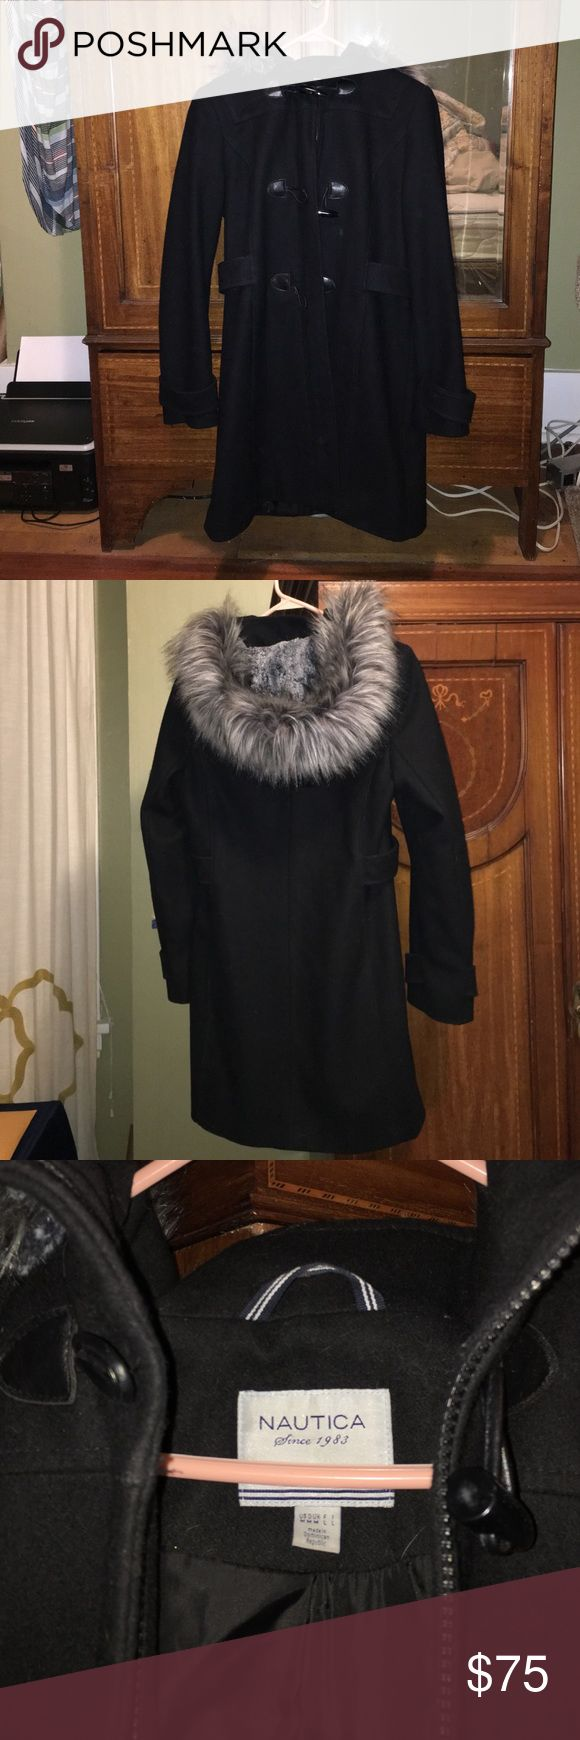 Nautica Women's Black Pea Coat w/ Faux Fur Hood Extra warm and cozy with wool material, gray-black faux fur hood, and toggle closures on top of zipper. Was given to me as a gift last winter but I already had a coat. Very small, minor marks from me rubbing a fresh dryer sheet over it to remove any cat fur that may have gotten onto it while hanging in my closet. Nautica Jackets & Coats Pea Coats